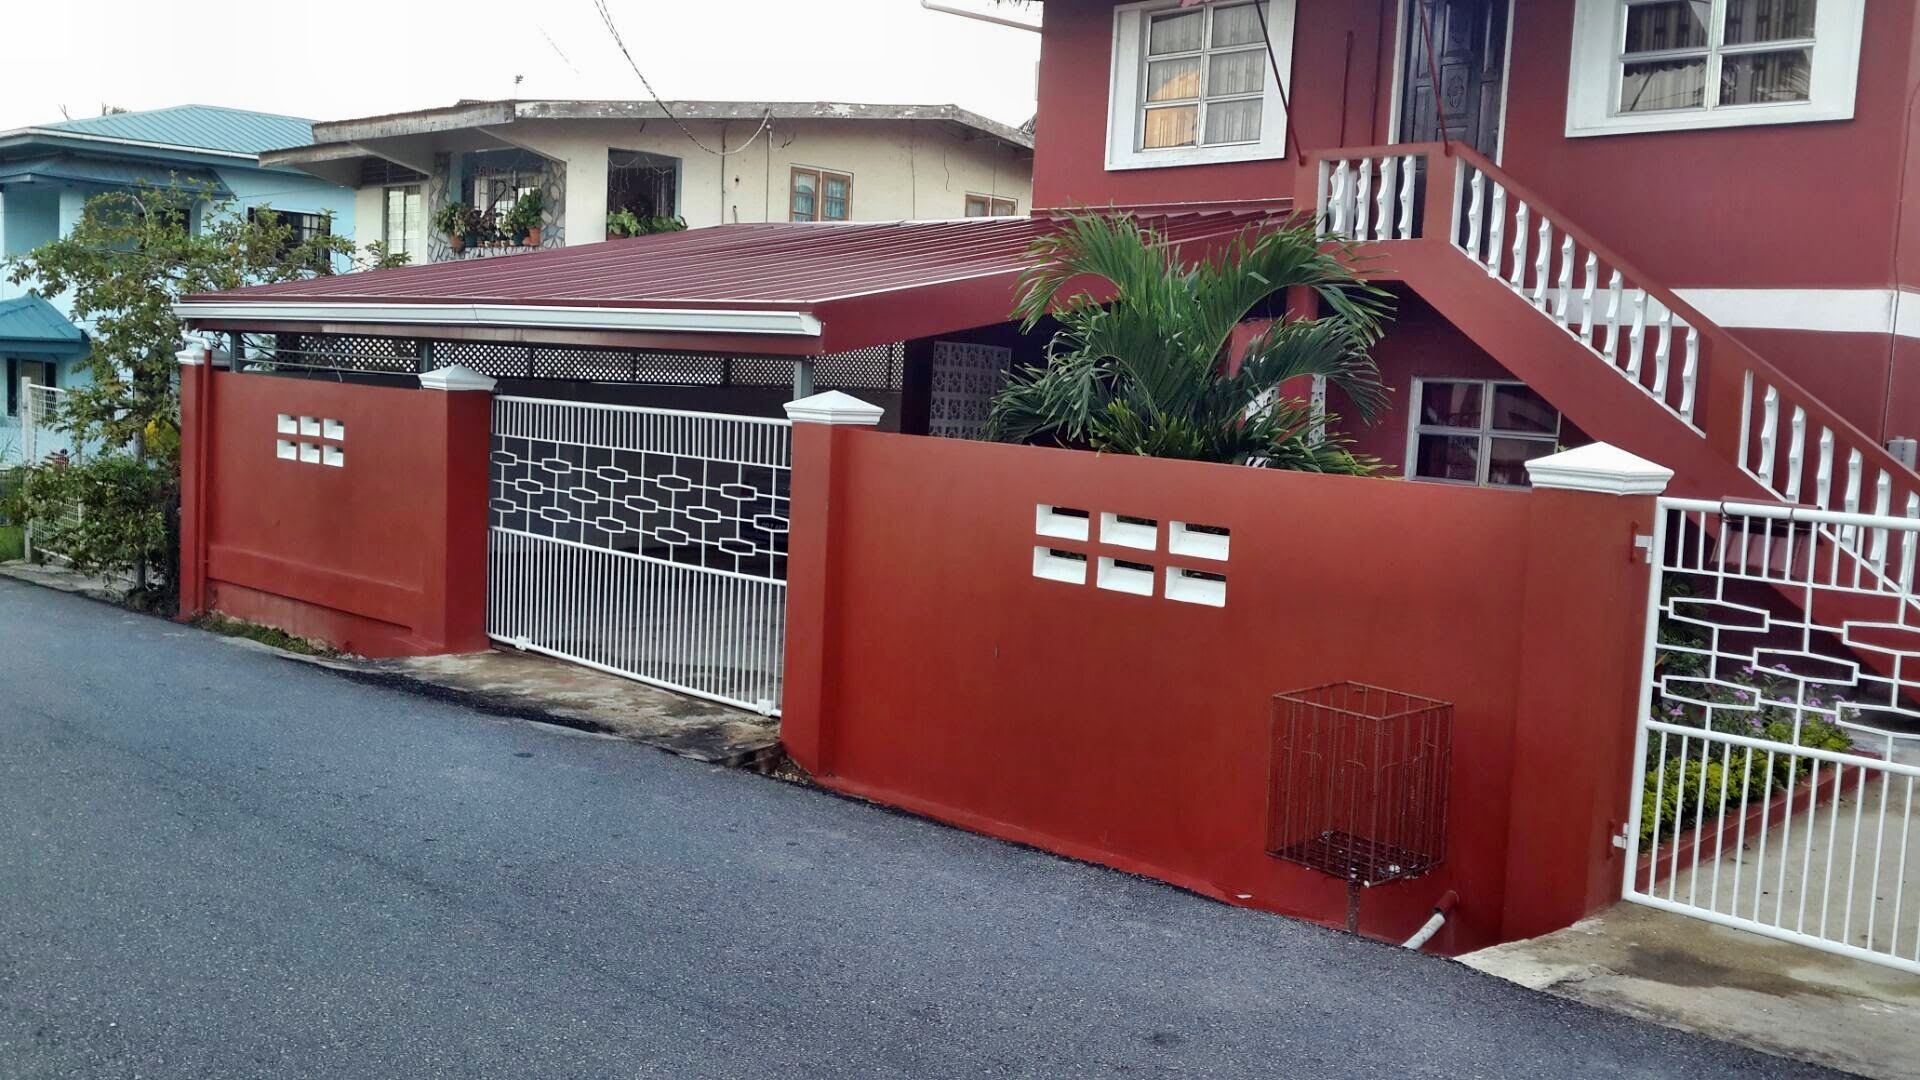 Roofing B Wears Sons Ltd Trinidad And Tobago